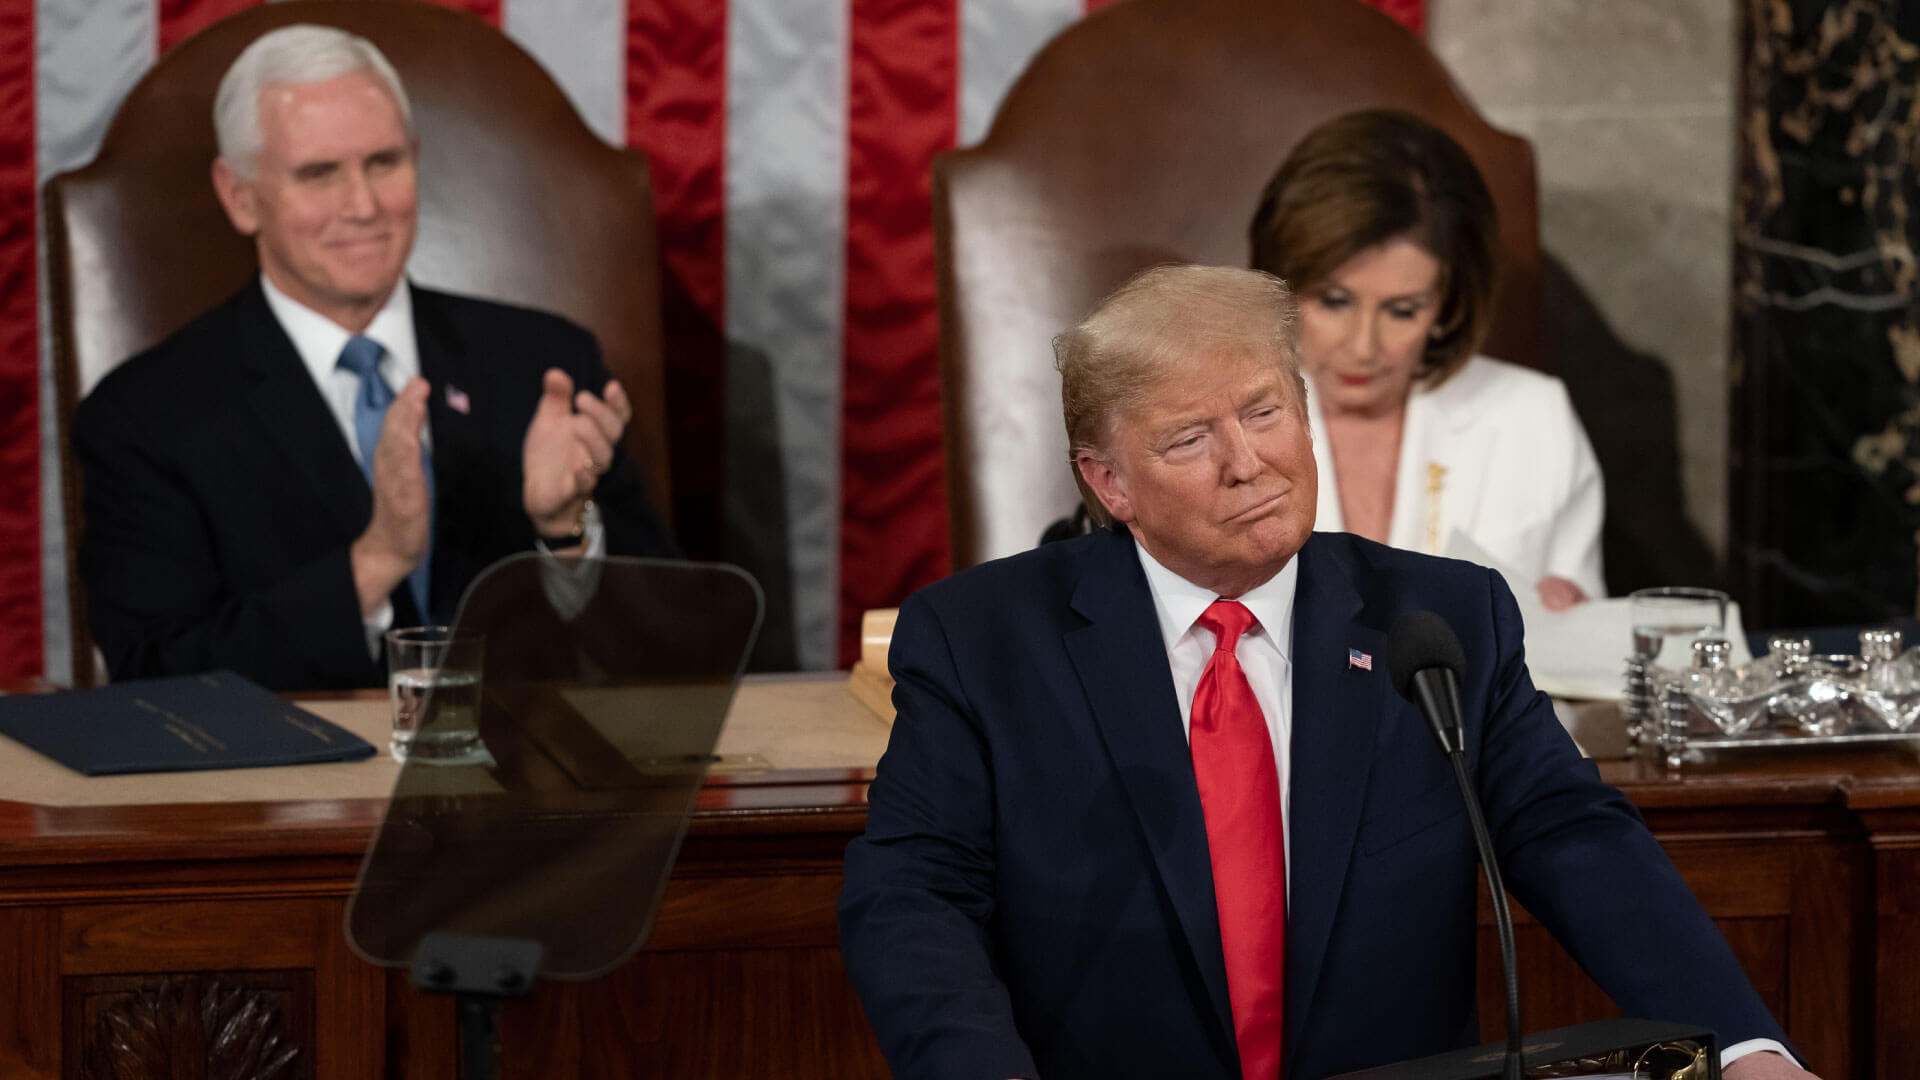 Trump during the 2020 State of the Union